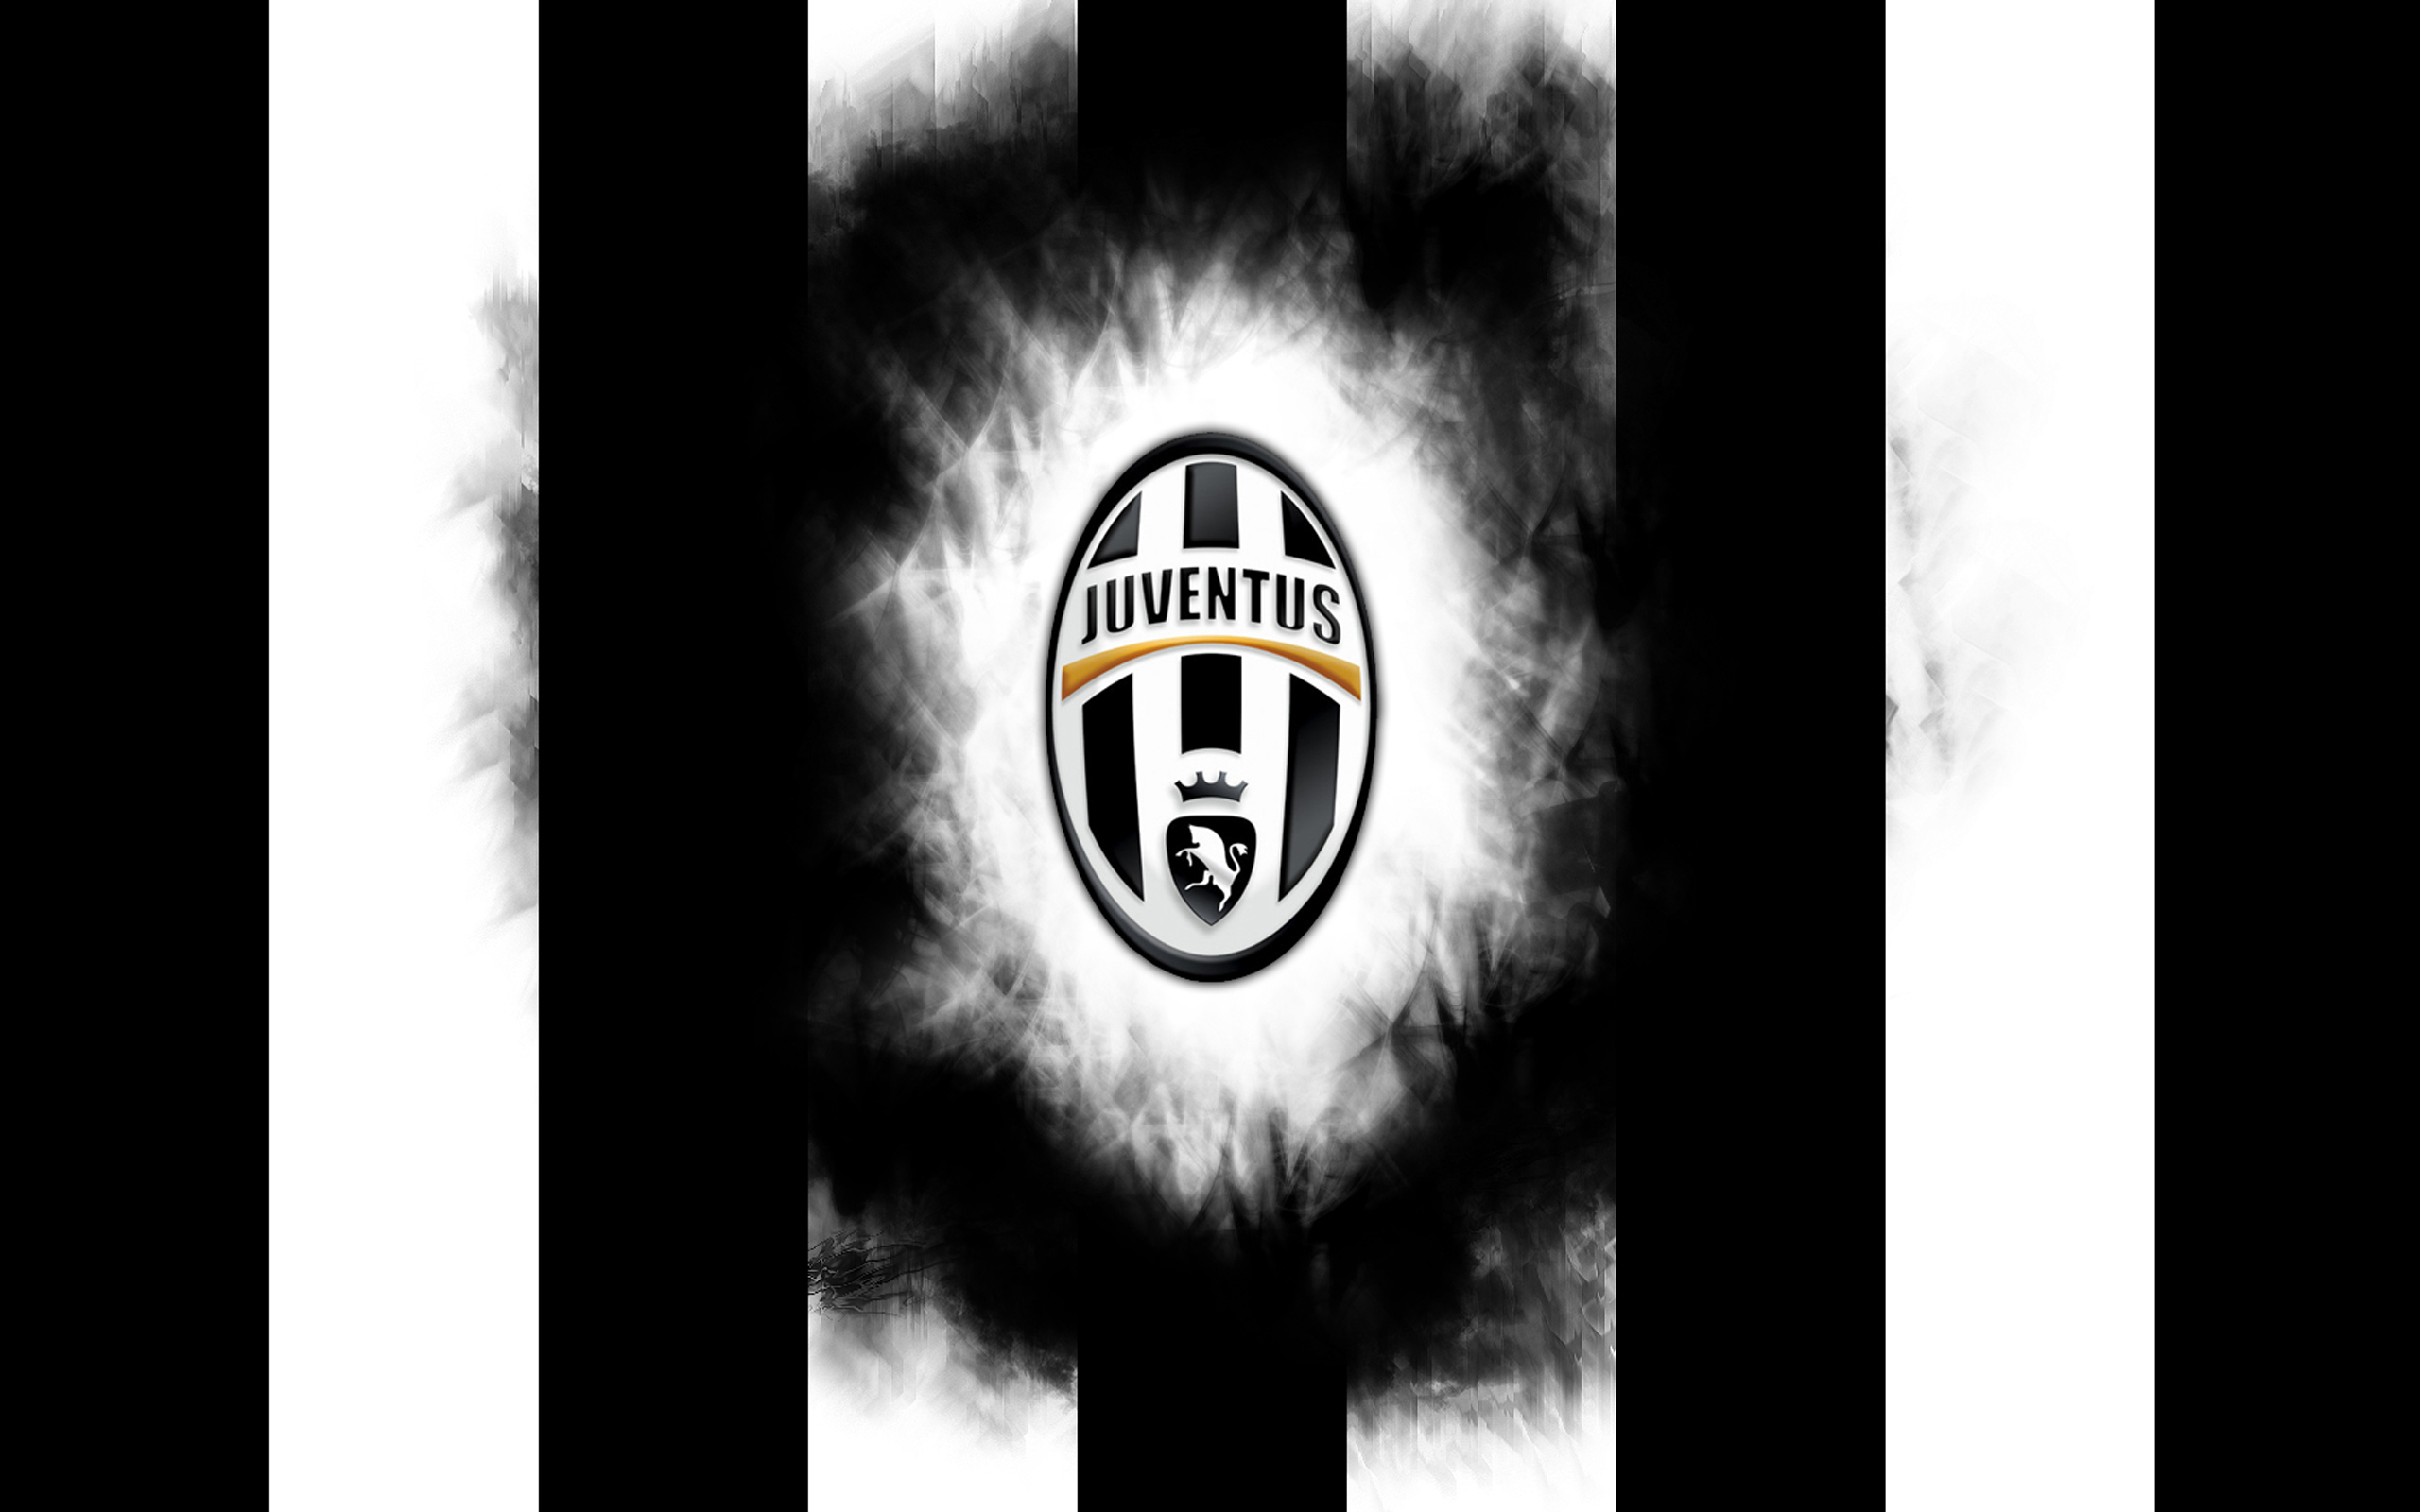 Juventus Fc Logo Wallpapers Hd 2560x1600 Wallpaper Teahub Io